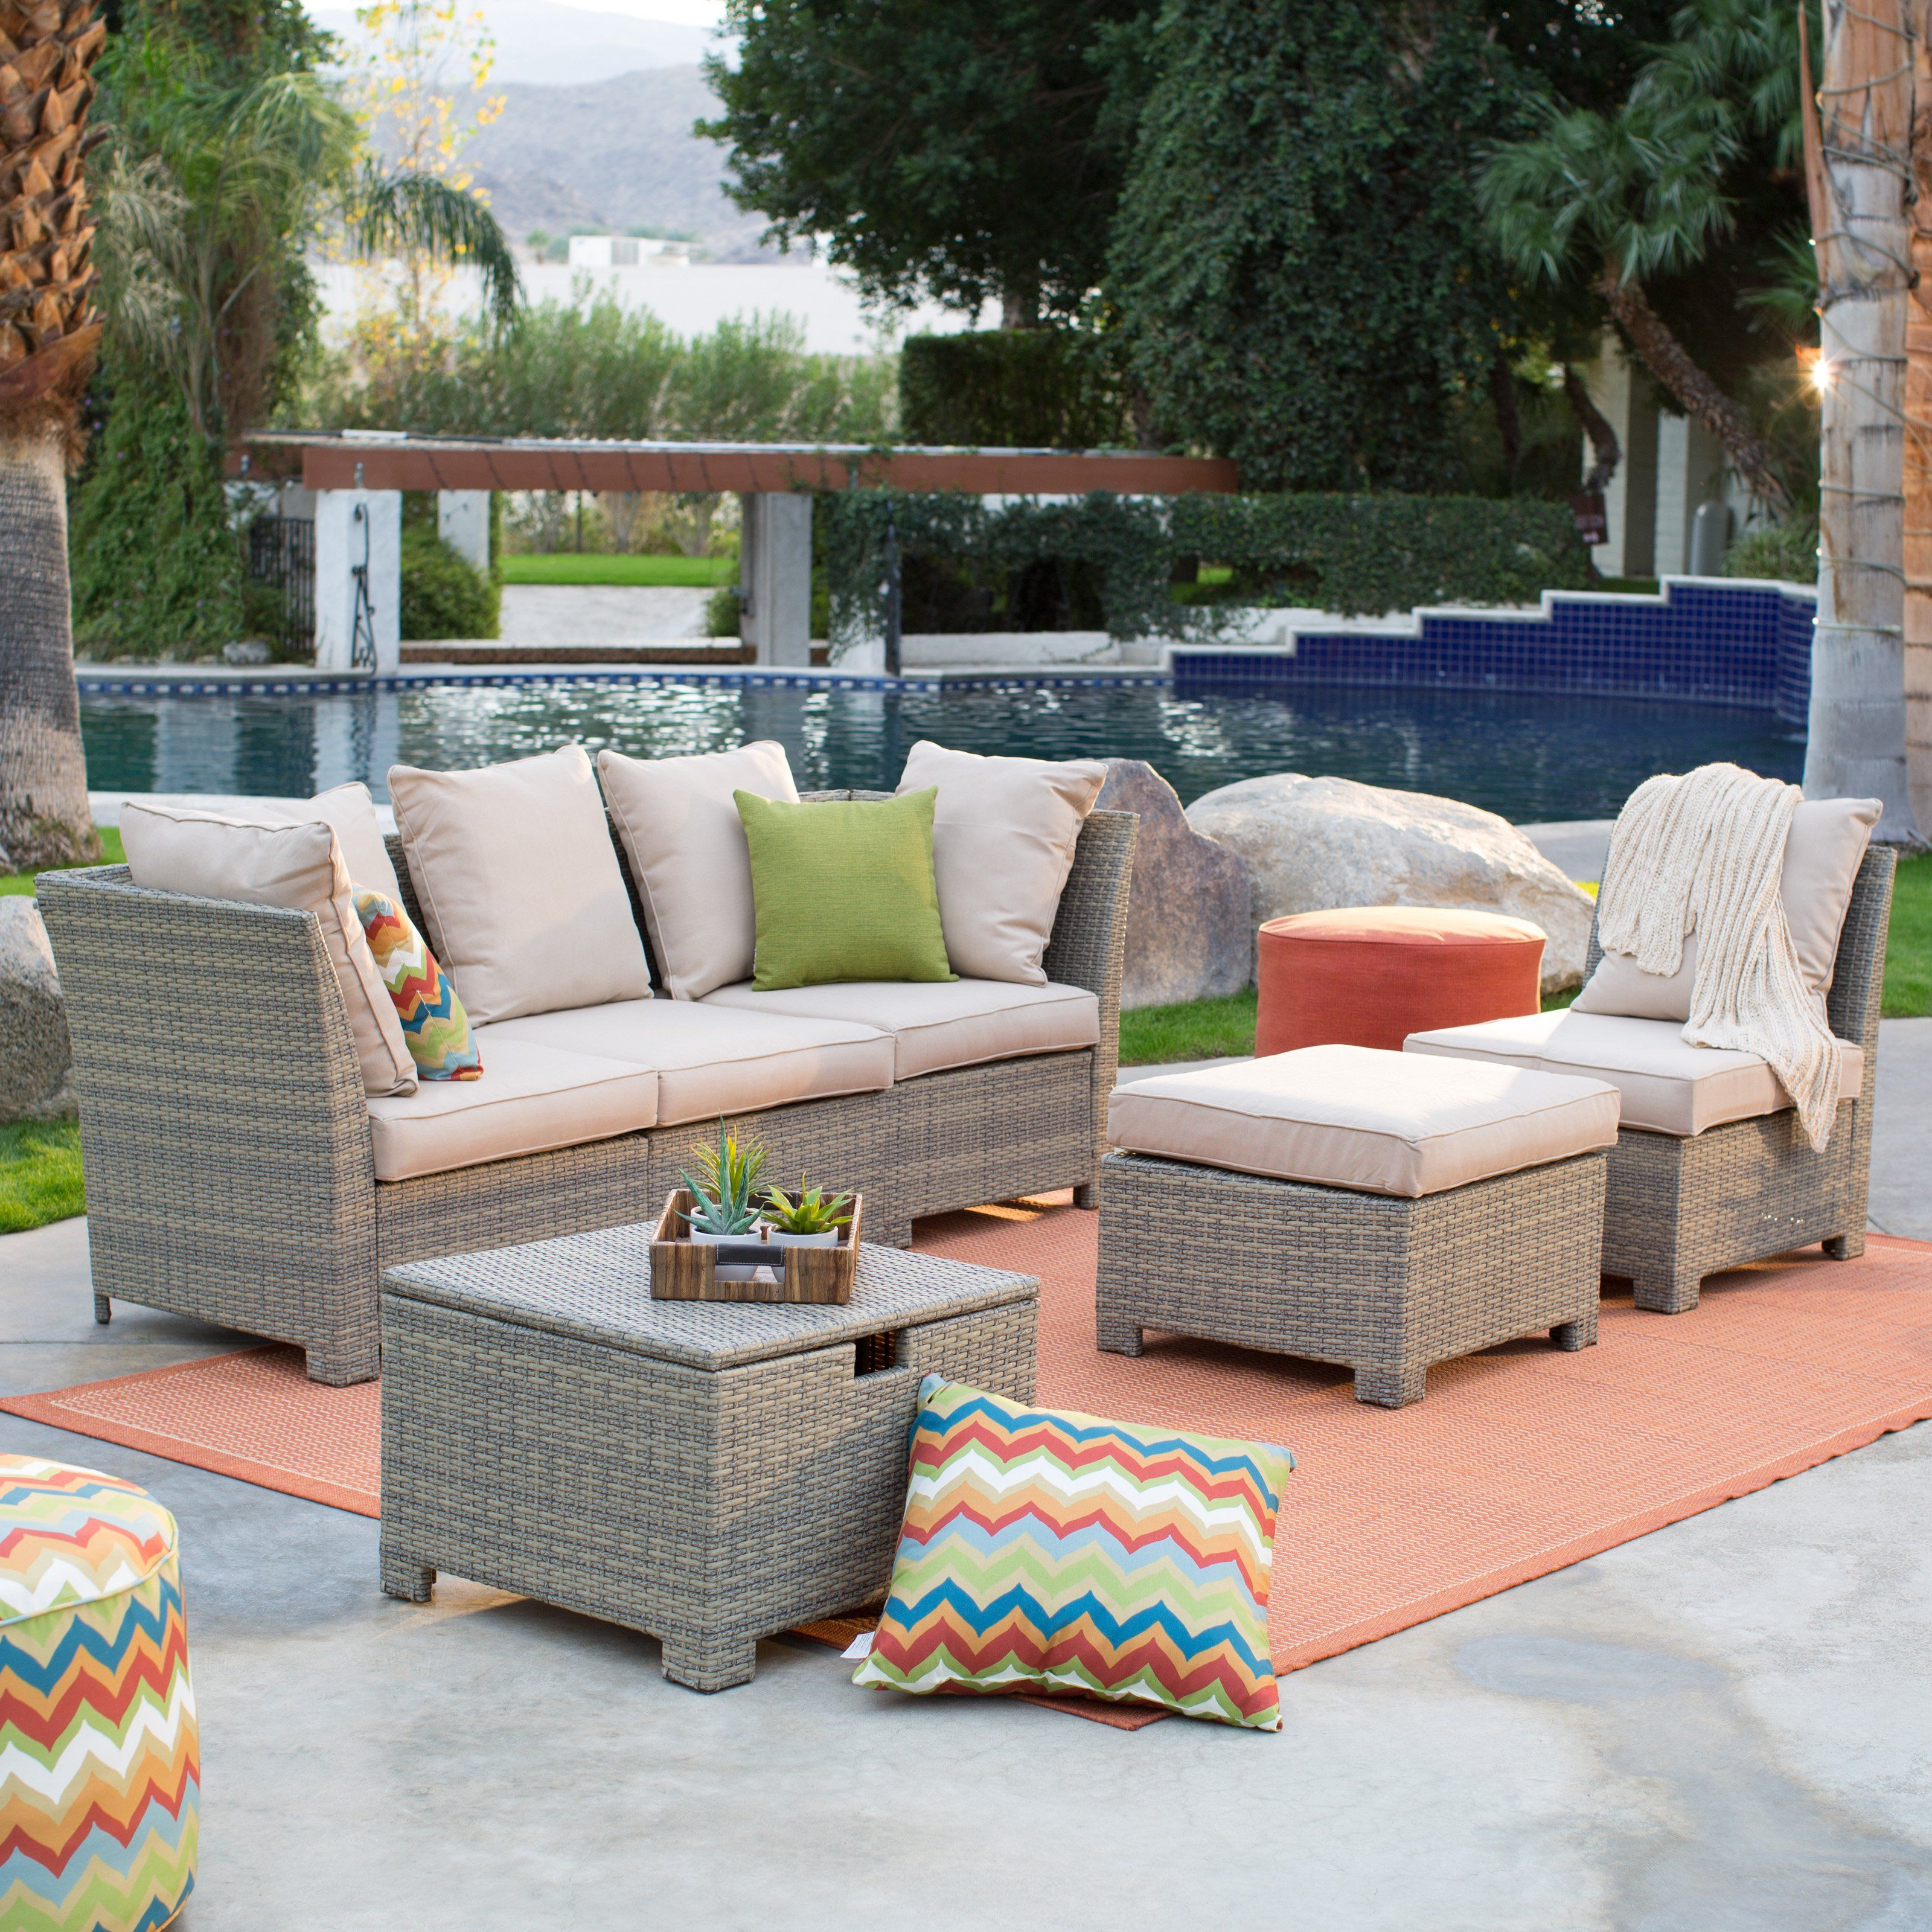 Outdoor Furniture Affordable: Have To Have It. Coral Coast South Isle All-Weather Wicker